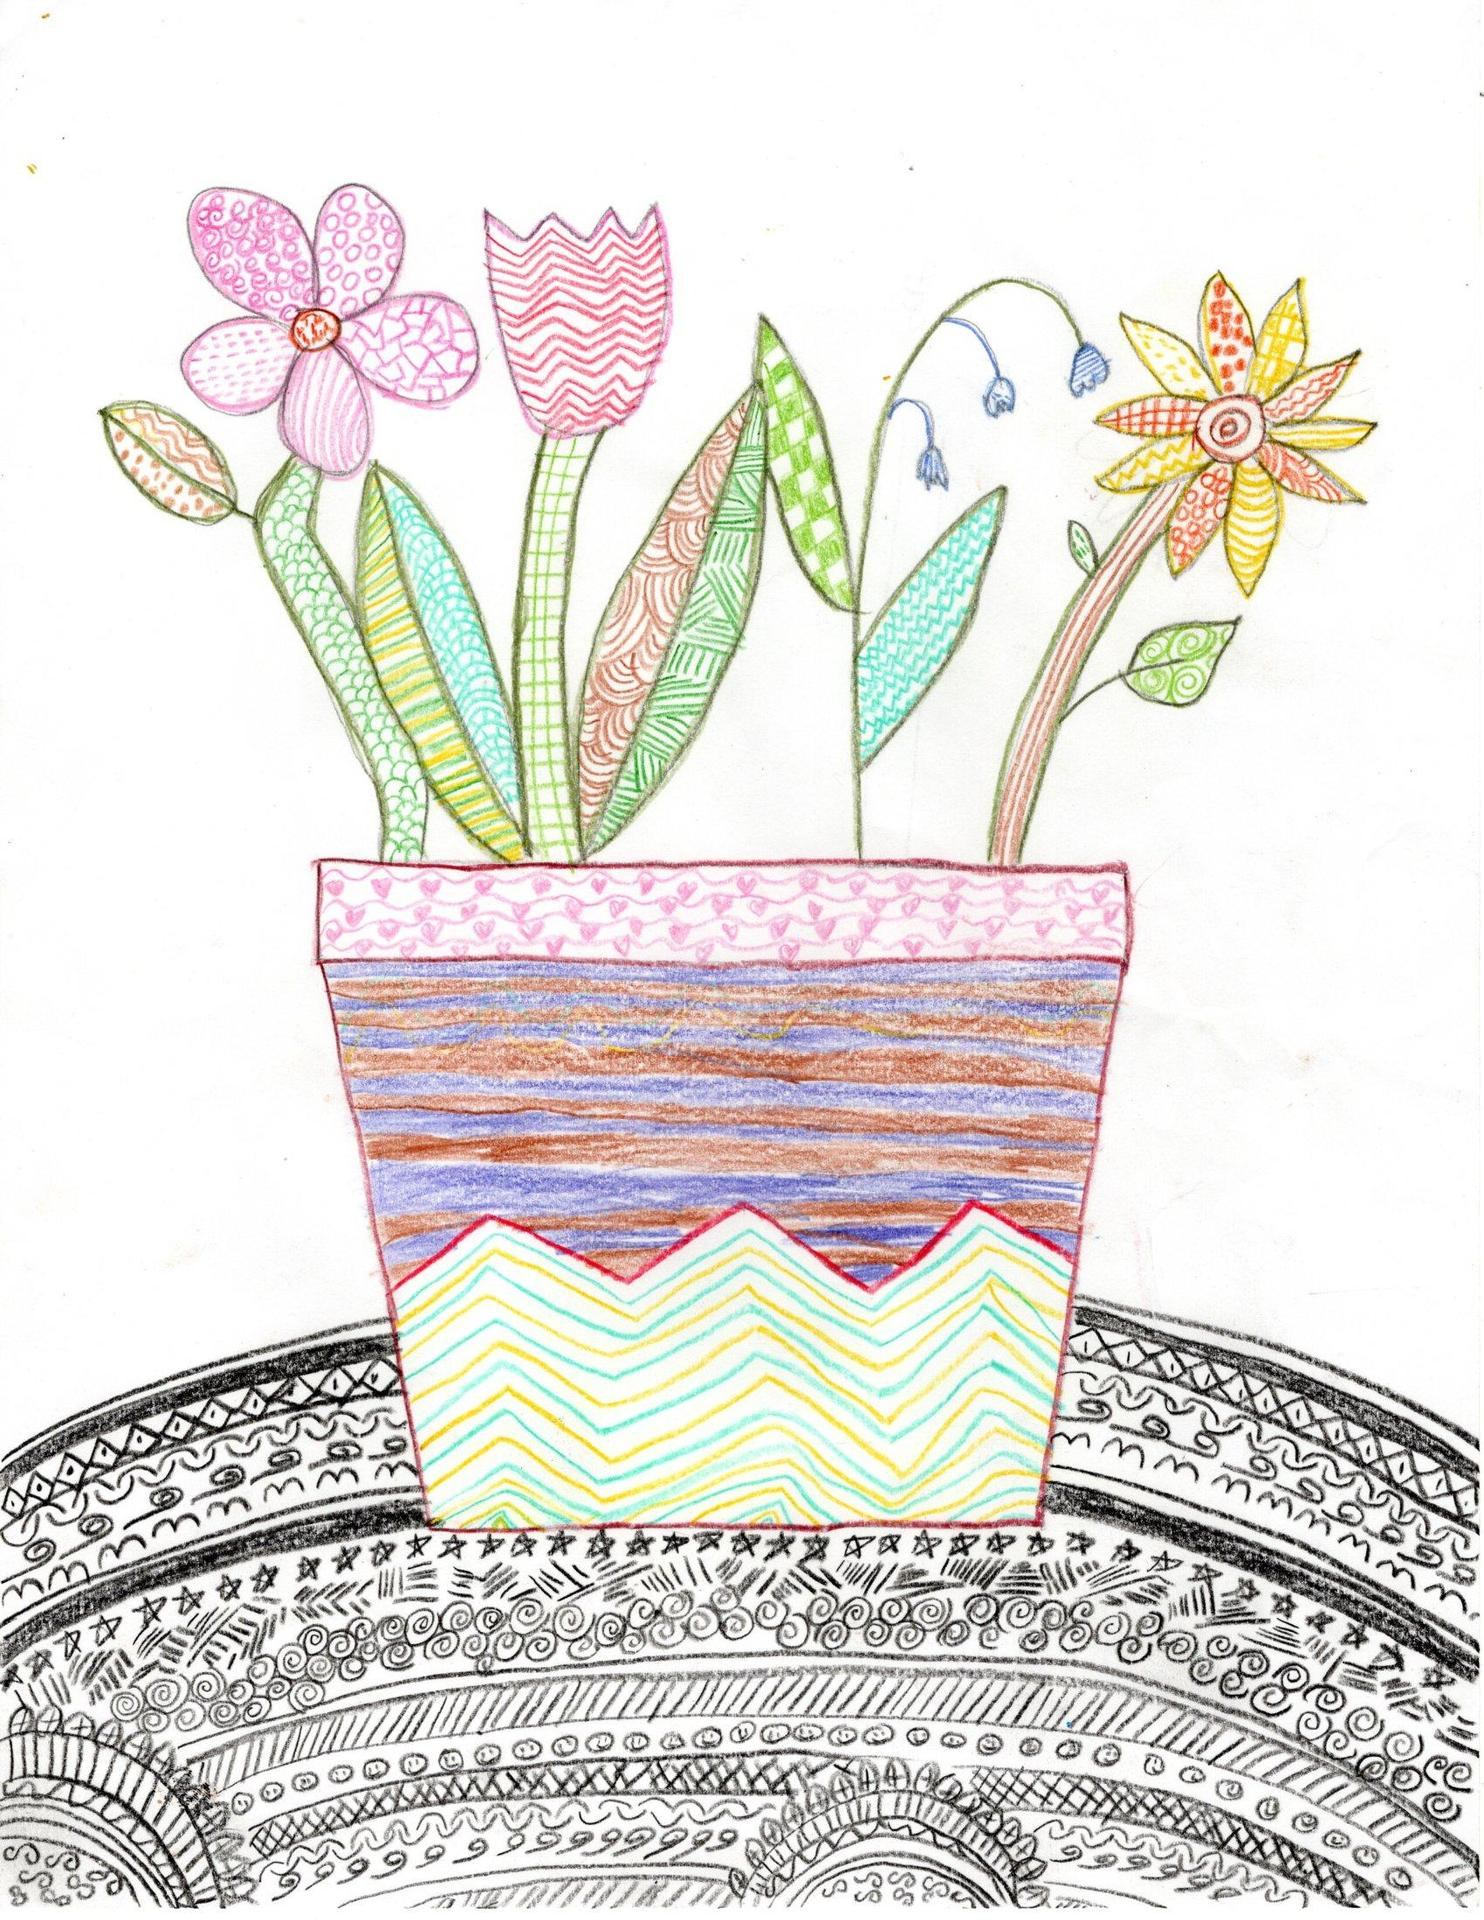 An elementary school student's drawing of a flower pot, using intricate patterns to decorate it with color pencil